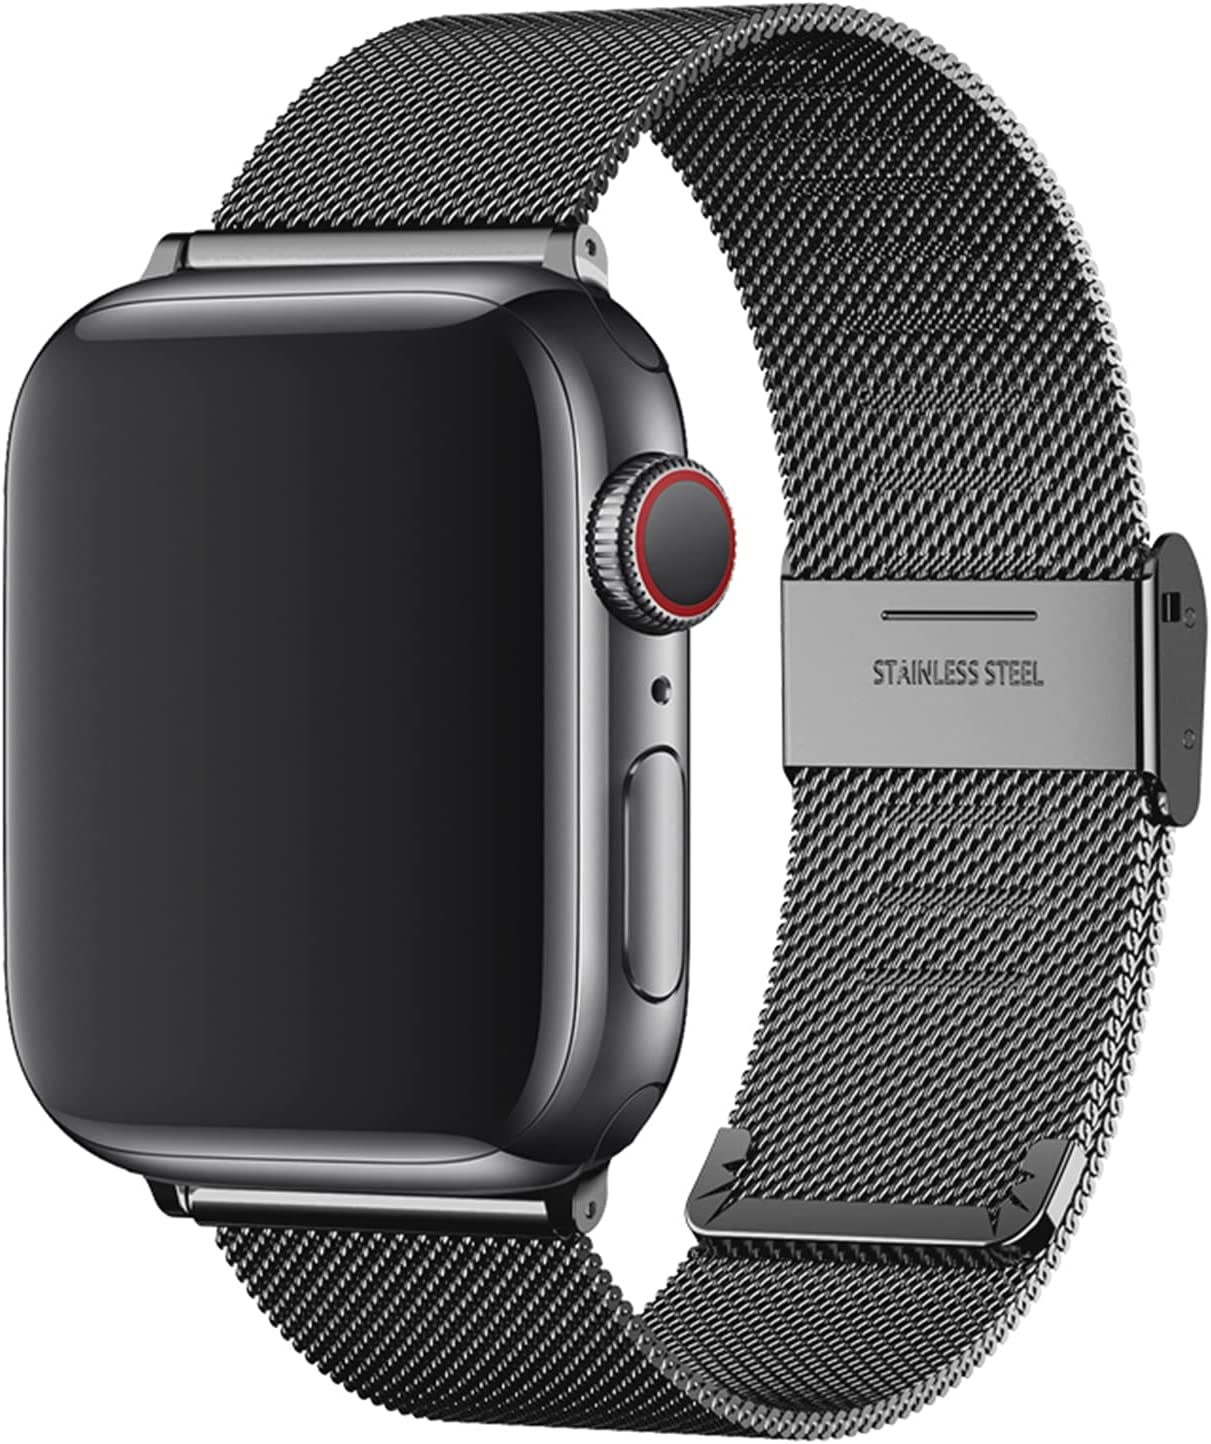 Replacement Bands Compatible with Apple Watch 44mm 42mm 40mm 38mm, Stainless Steel Watch Band for iWatch 6 SE 5 4 3 2 1 (44mm/42mm, Black)